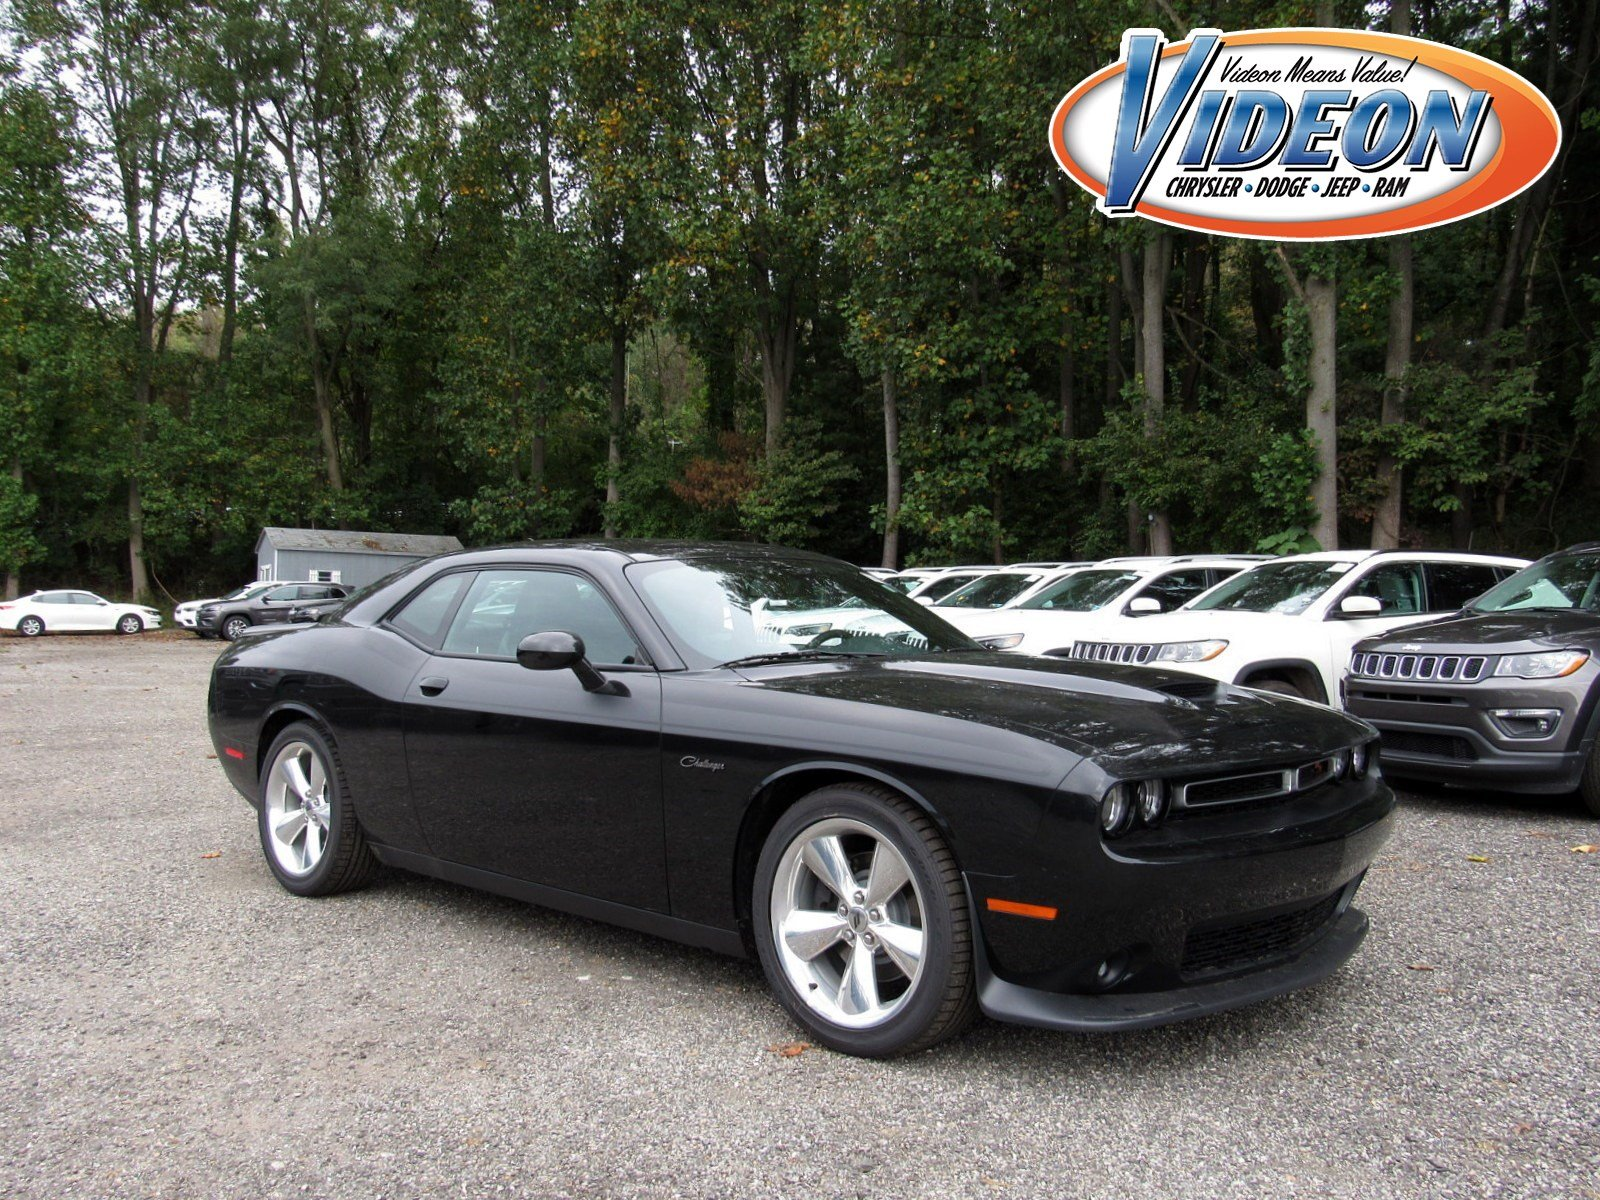 New 2019 Dodge Challenger R T Coupe In Newtown Square K3032